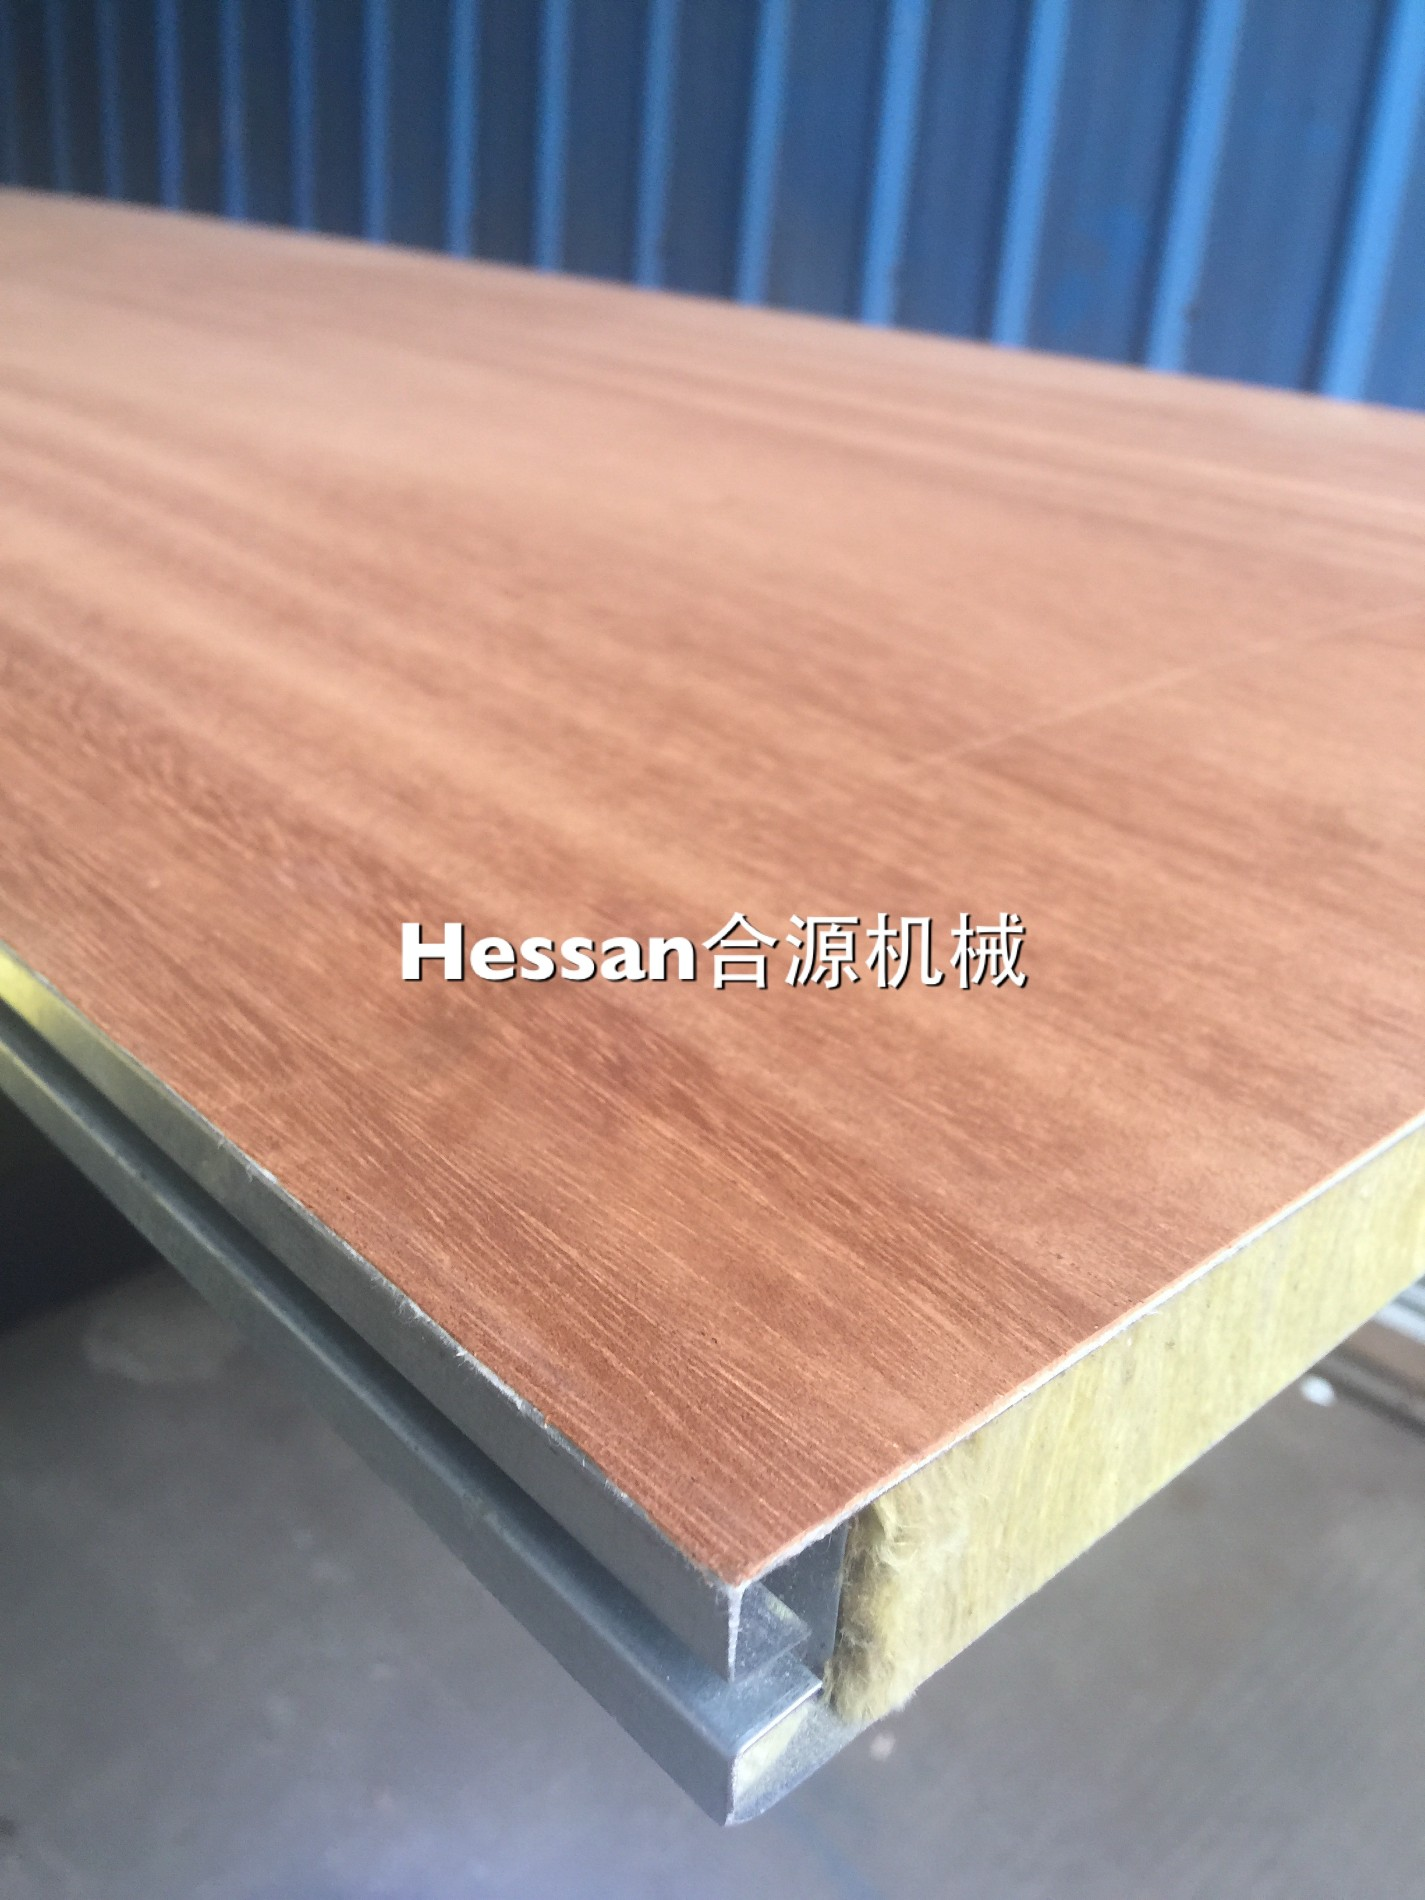 PUR Woodworking Machinery For Laminated Panel Manufacturers, PUR Woodworking Machinery For Laminated Panel Factory, Supply PUR Woodworking Machinery For Laminated Panel